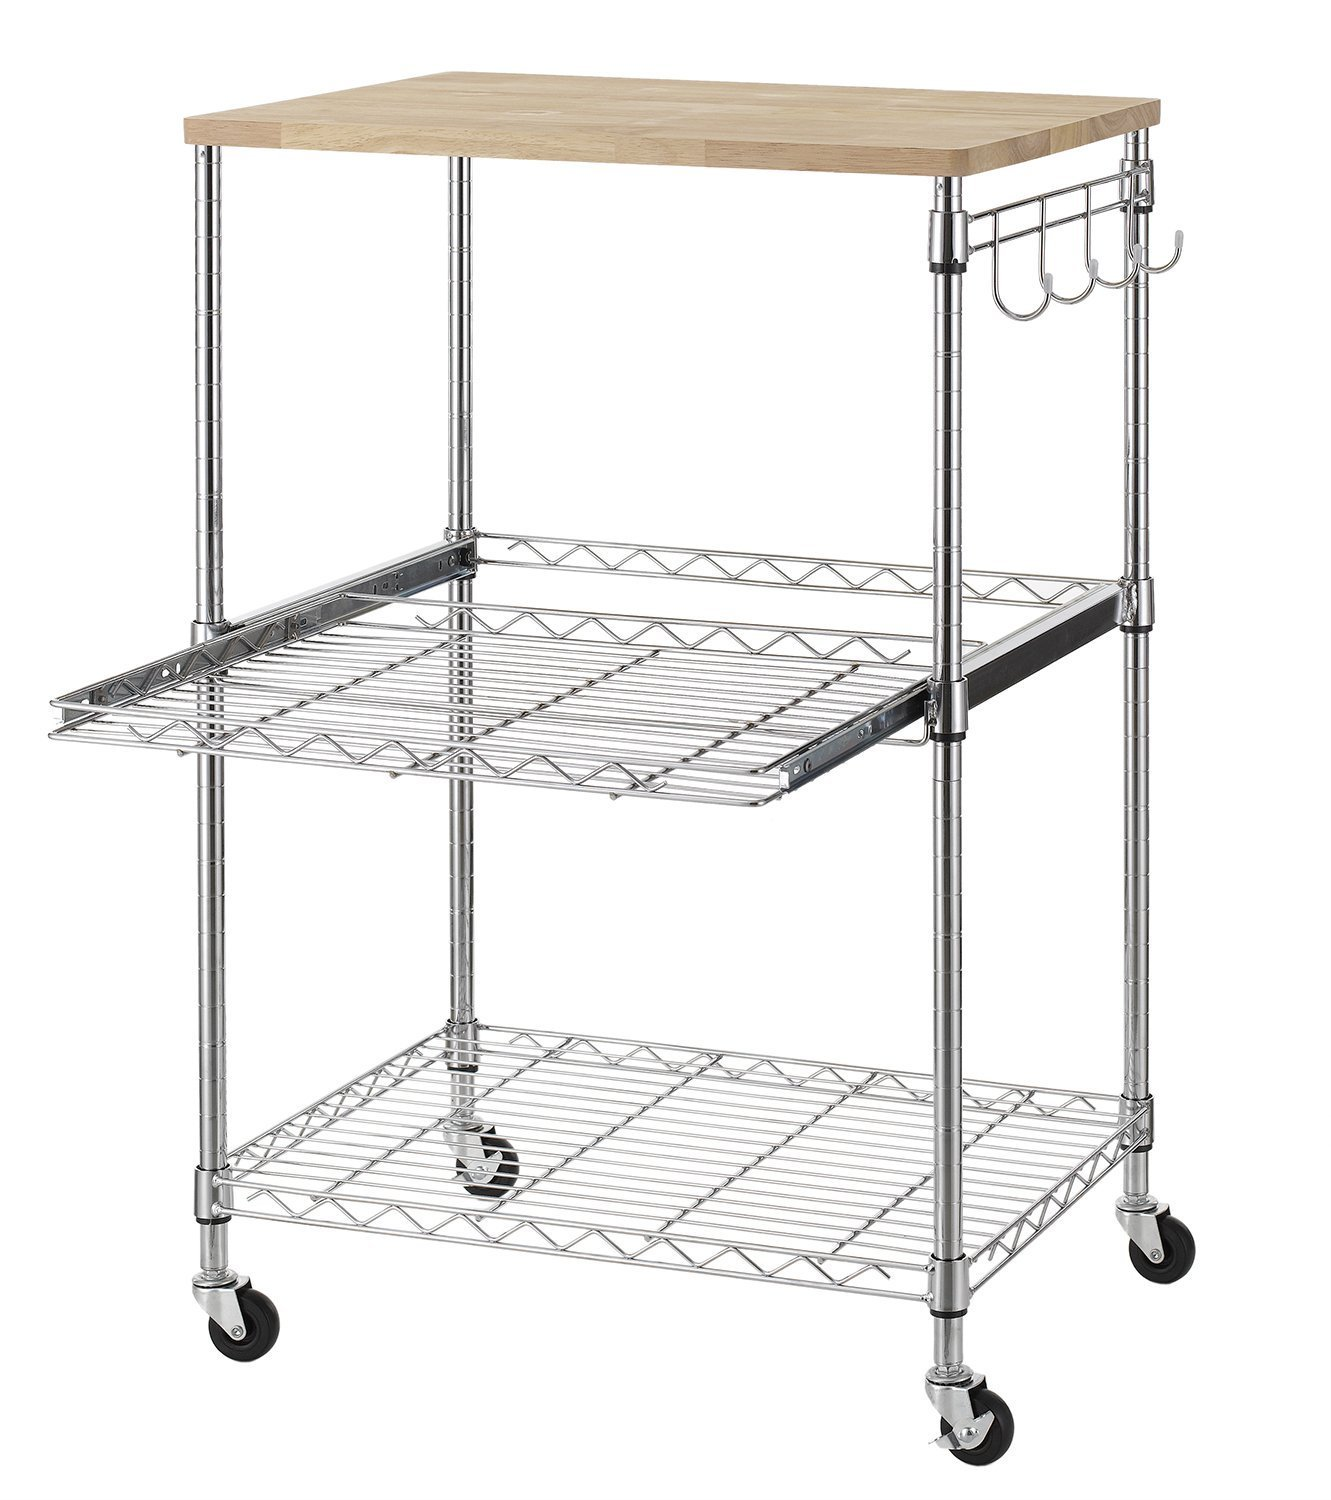 Finnhomy 3-Tier Wire Rolling Kitchen Cart, Food Service Cart, Microwave Stand, Oak Cutting Board and Chrome by Finnhomy